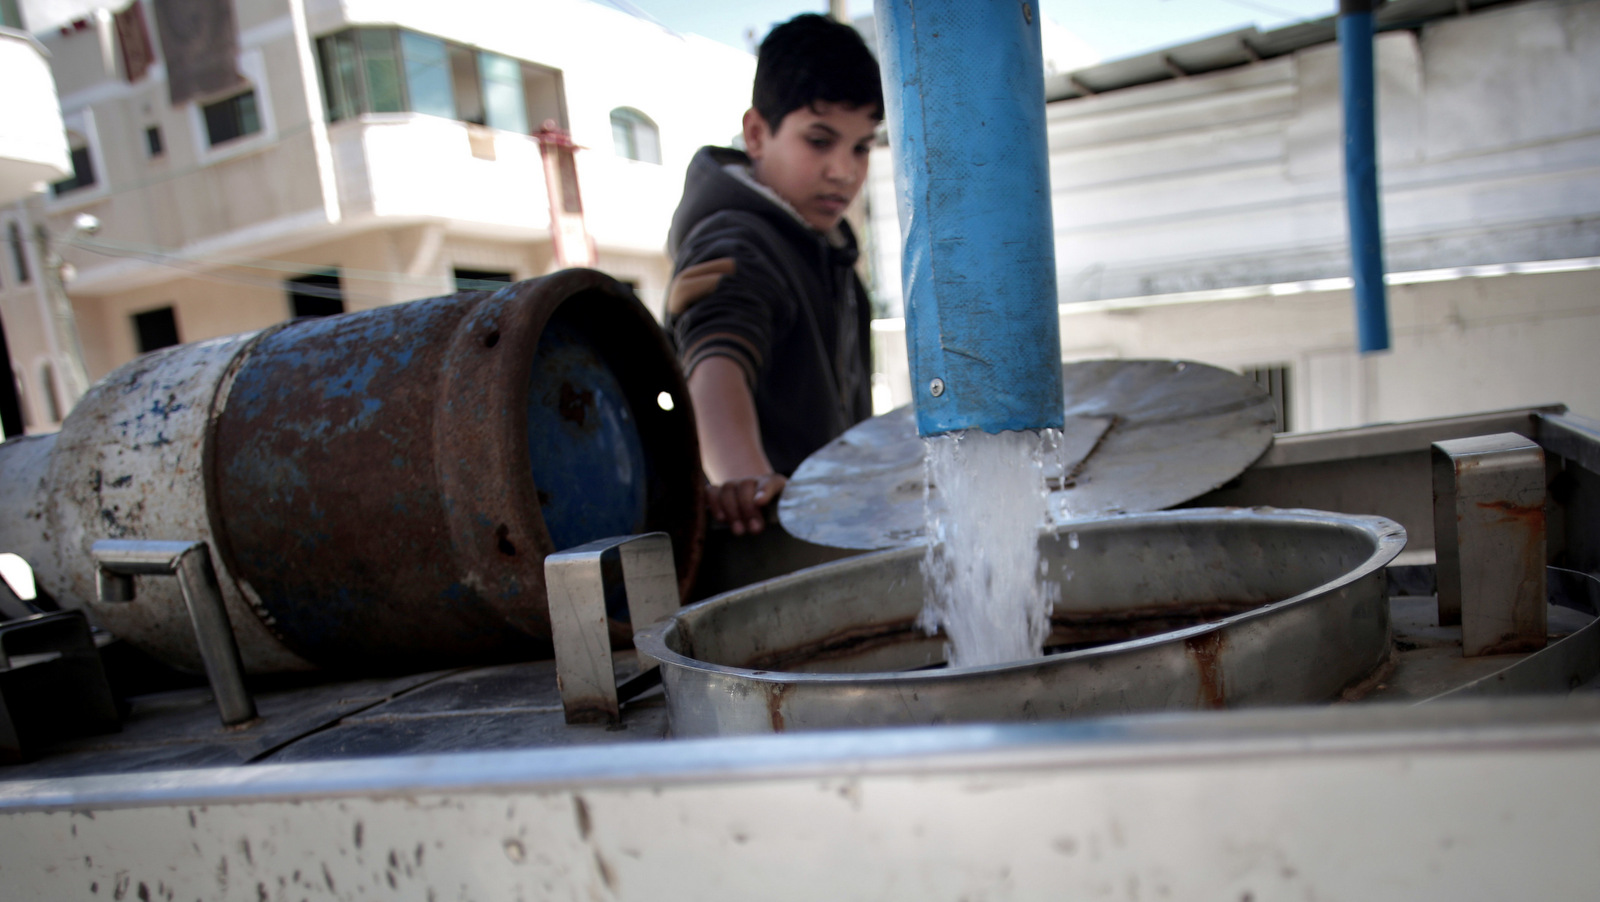 A Palestinian man fills tankers with drinking water for sale at a drinking water station in Gaza City. Poor sewage treatment is a feature of life in Gaza, a result of infrastructure damaged during wars with Israel and a chronic shortage of electricity to run wastewater plants. (AP/Khalil Hamra)